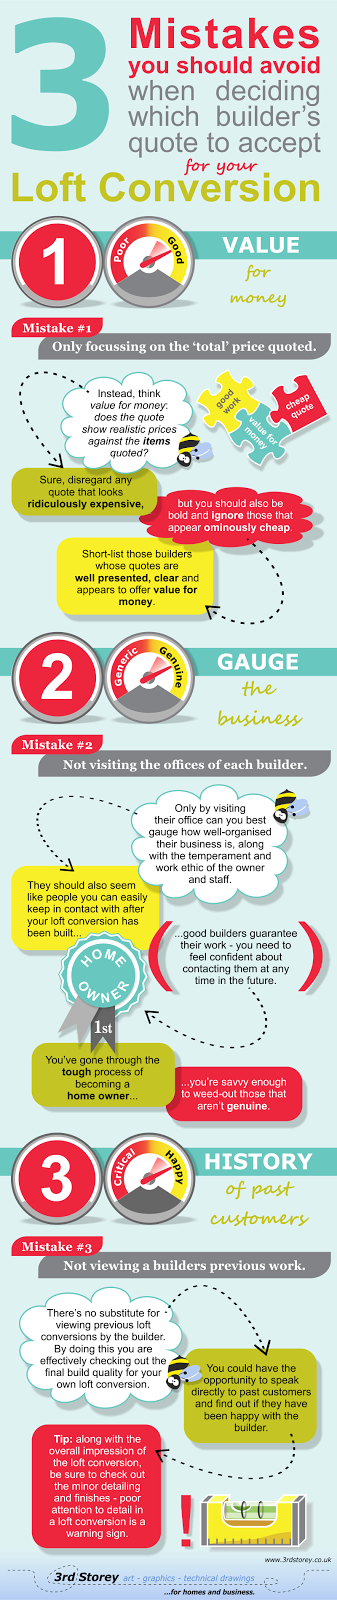 Infographic: 3 Mistakes You Should Avoid When Deciding Which Builders Quote to Accept.